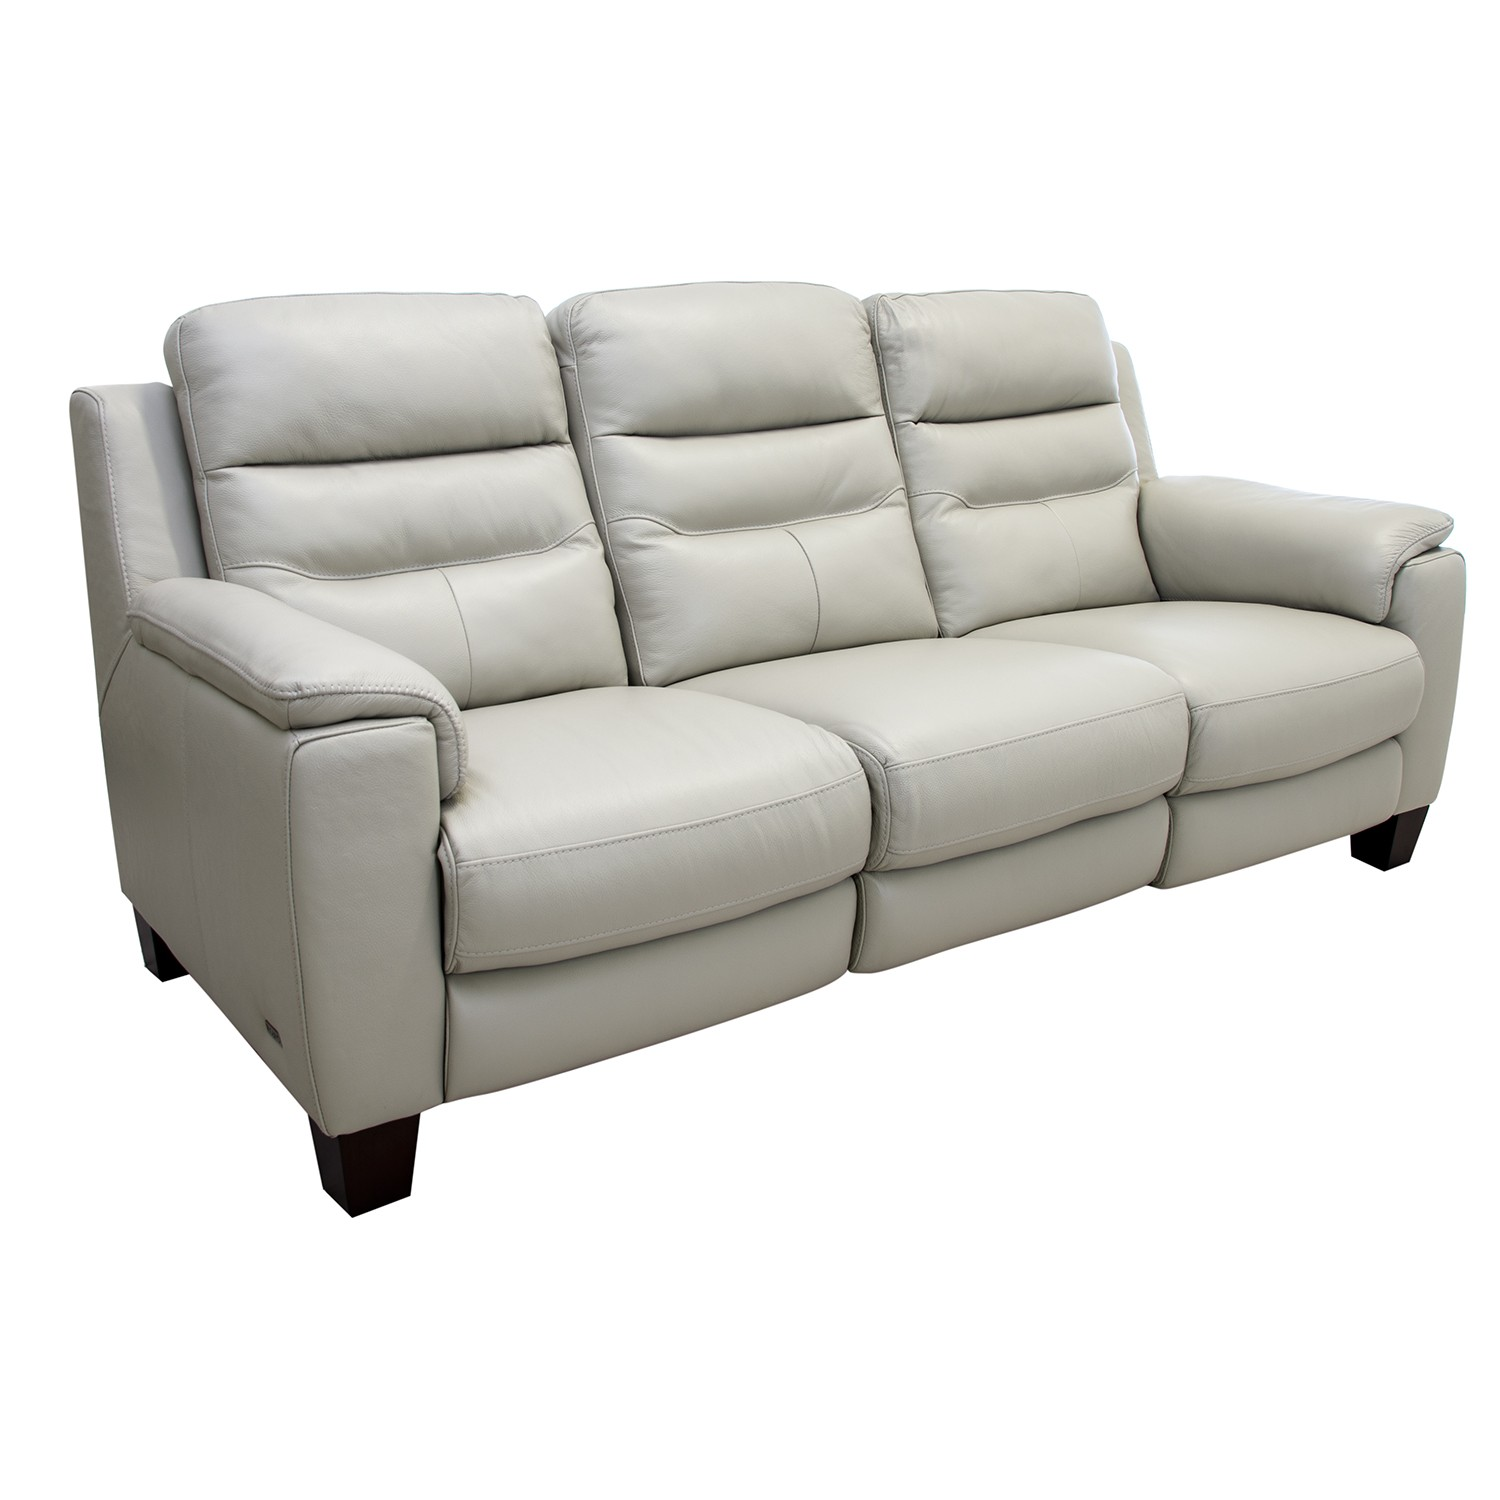 Jonty Three Seater Power Recliner Leather Sofa